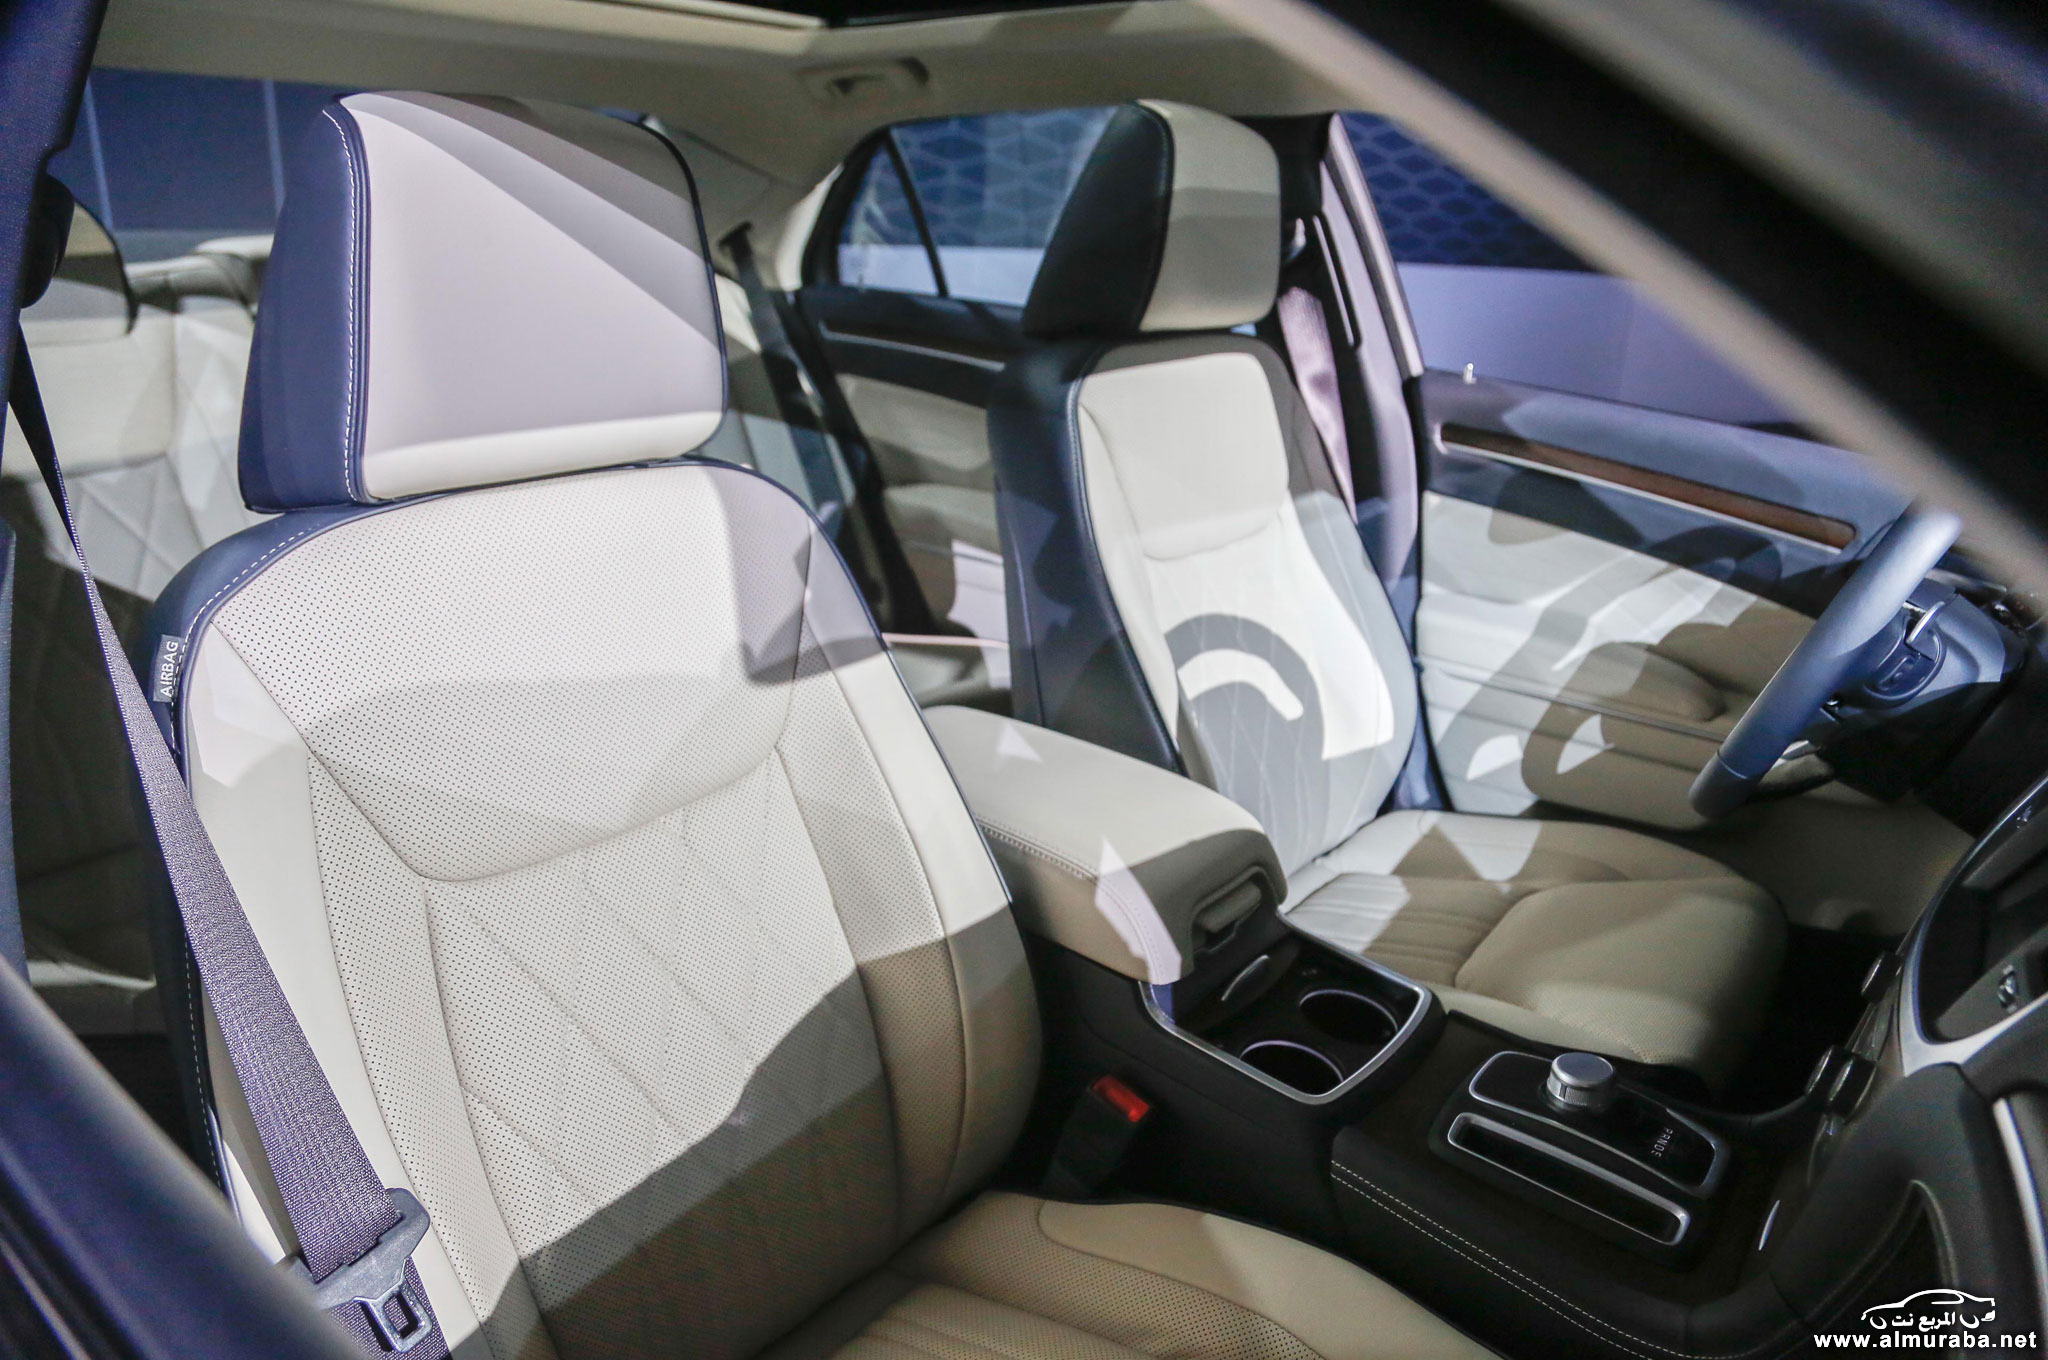 2015-chrysler-300-interior-seats